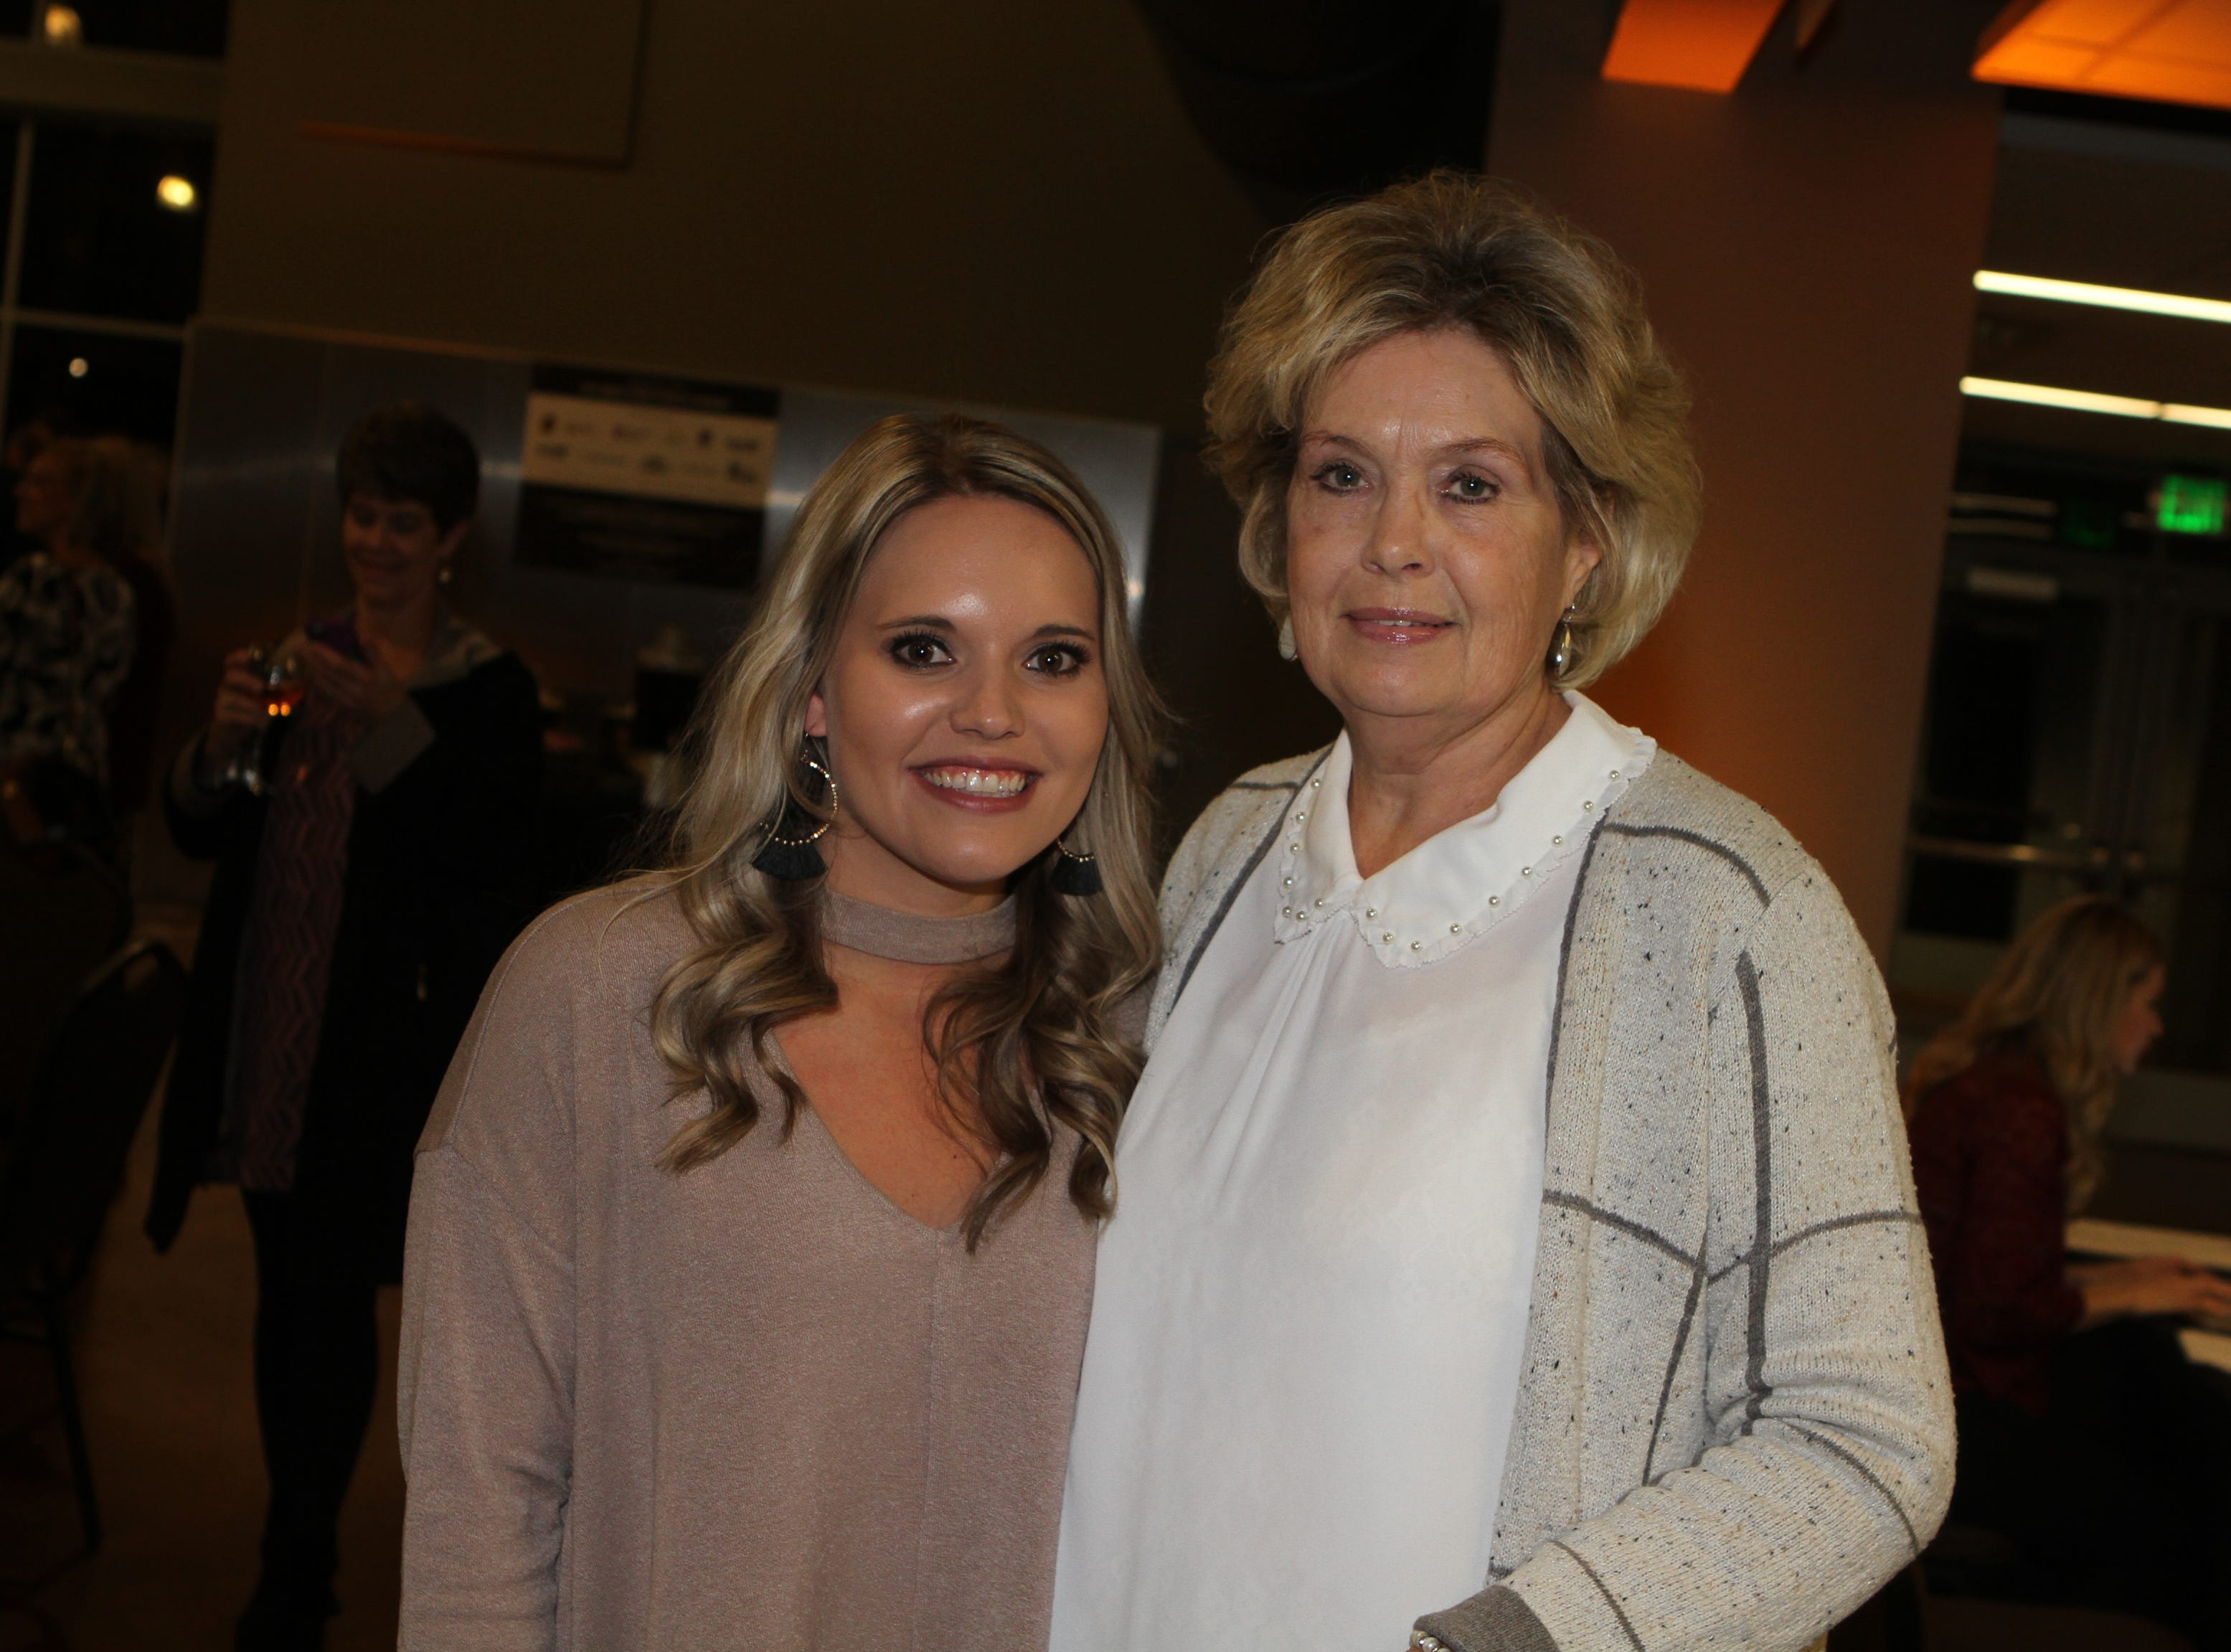 Haley Davis and Deb Cummings at CMC Education Foundation's annual fundraiser Vision to Reality on Friday, November 2, 2018